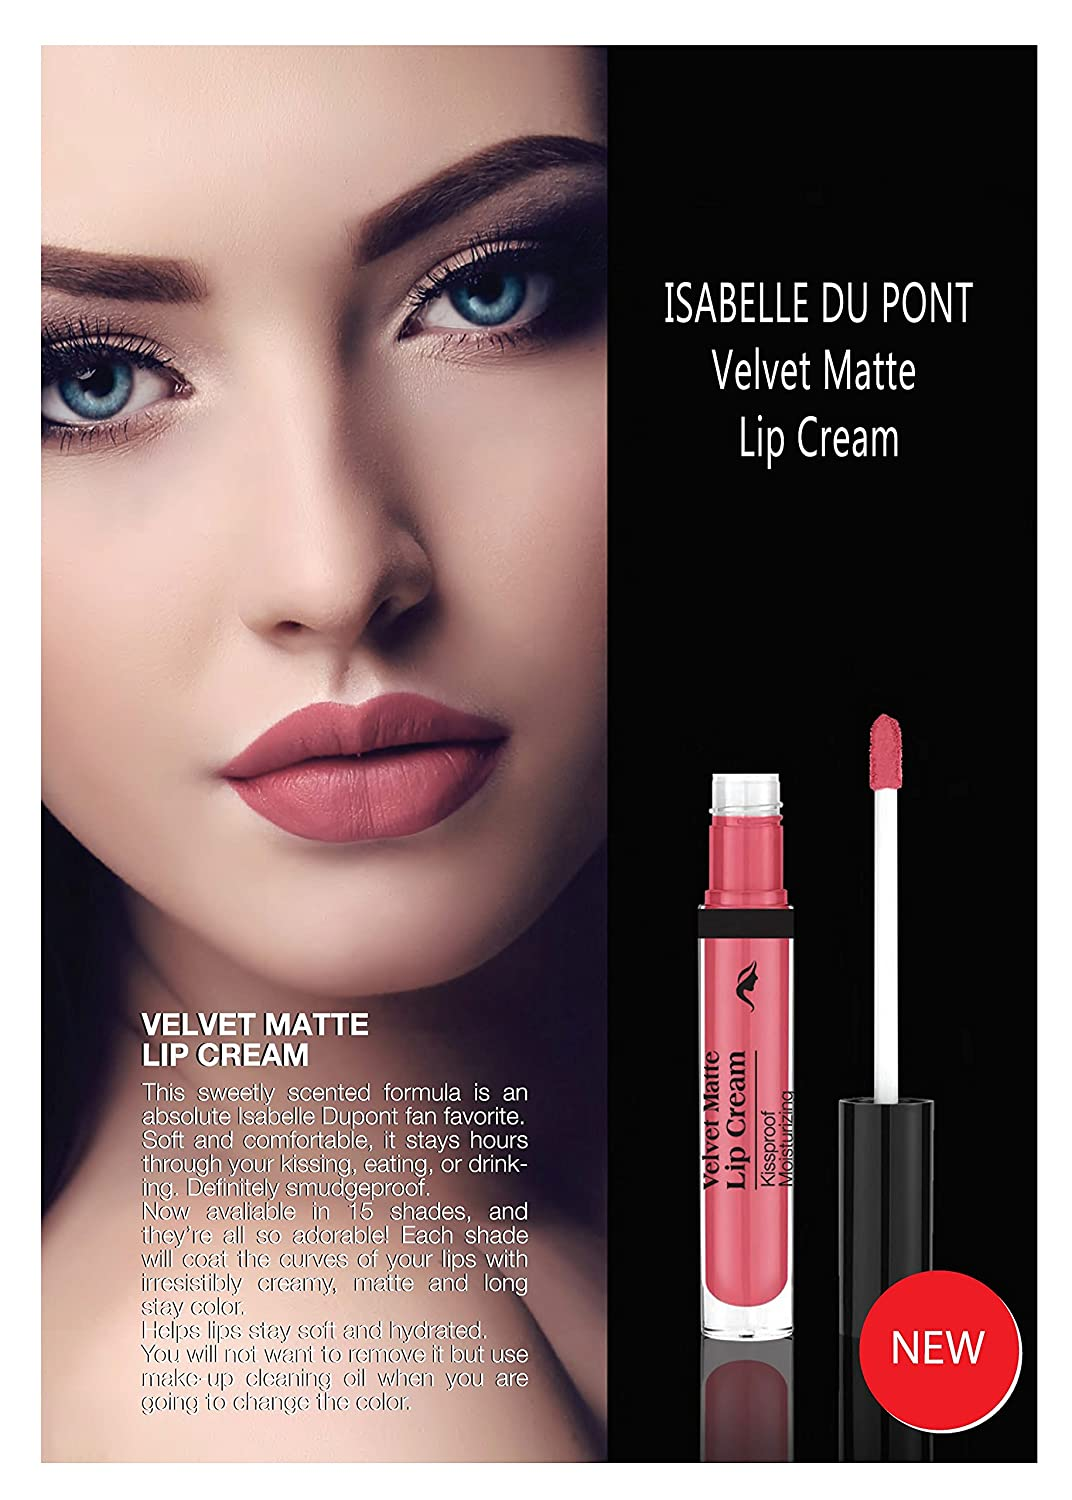 Velvet Matte Lipstick Kissproof Moisturizing Lip Cream Long Wearing Gloss By Isabelle Dupont Naked Beige Beauty